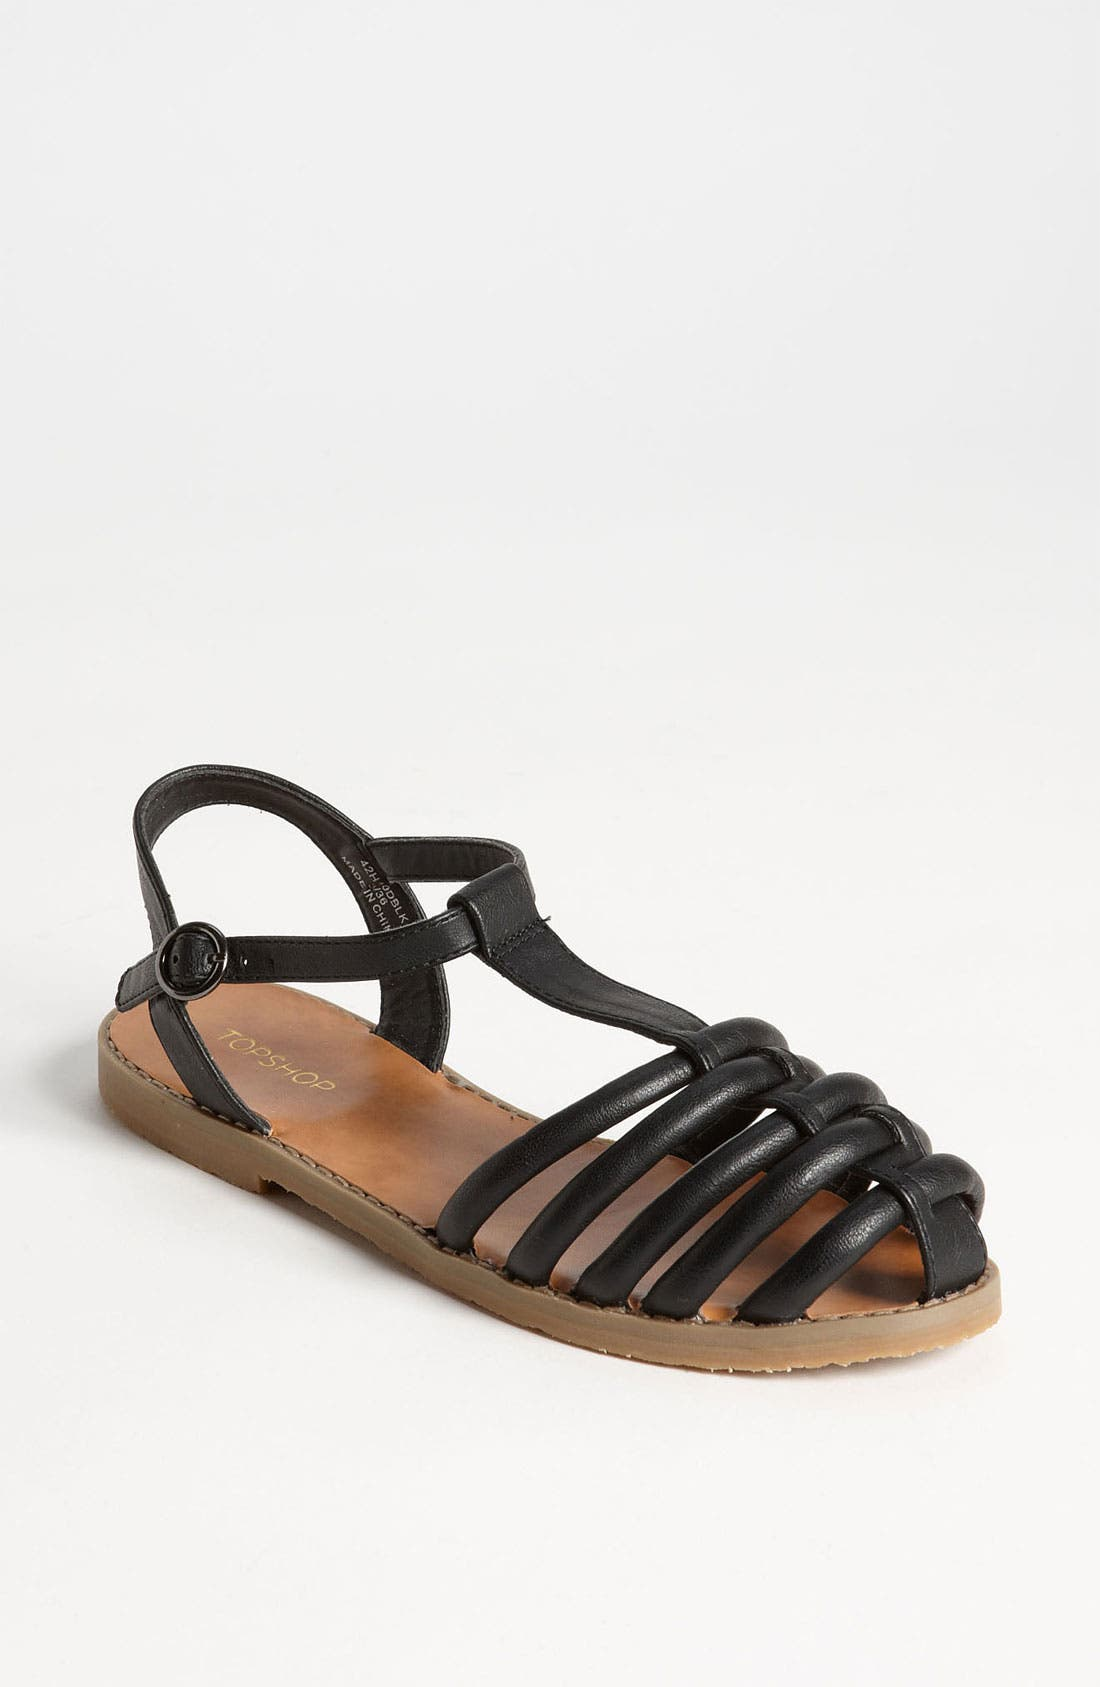 Alternate Image 1 Selected - Topshop 'Hampi' Caged Toe Fisherman Sandal